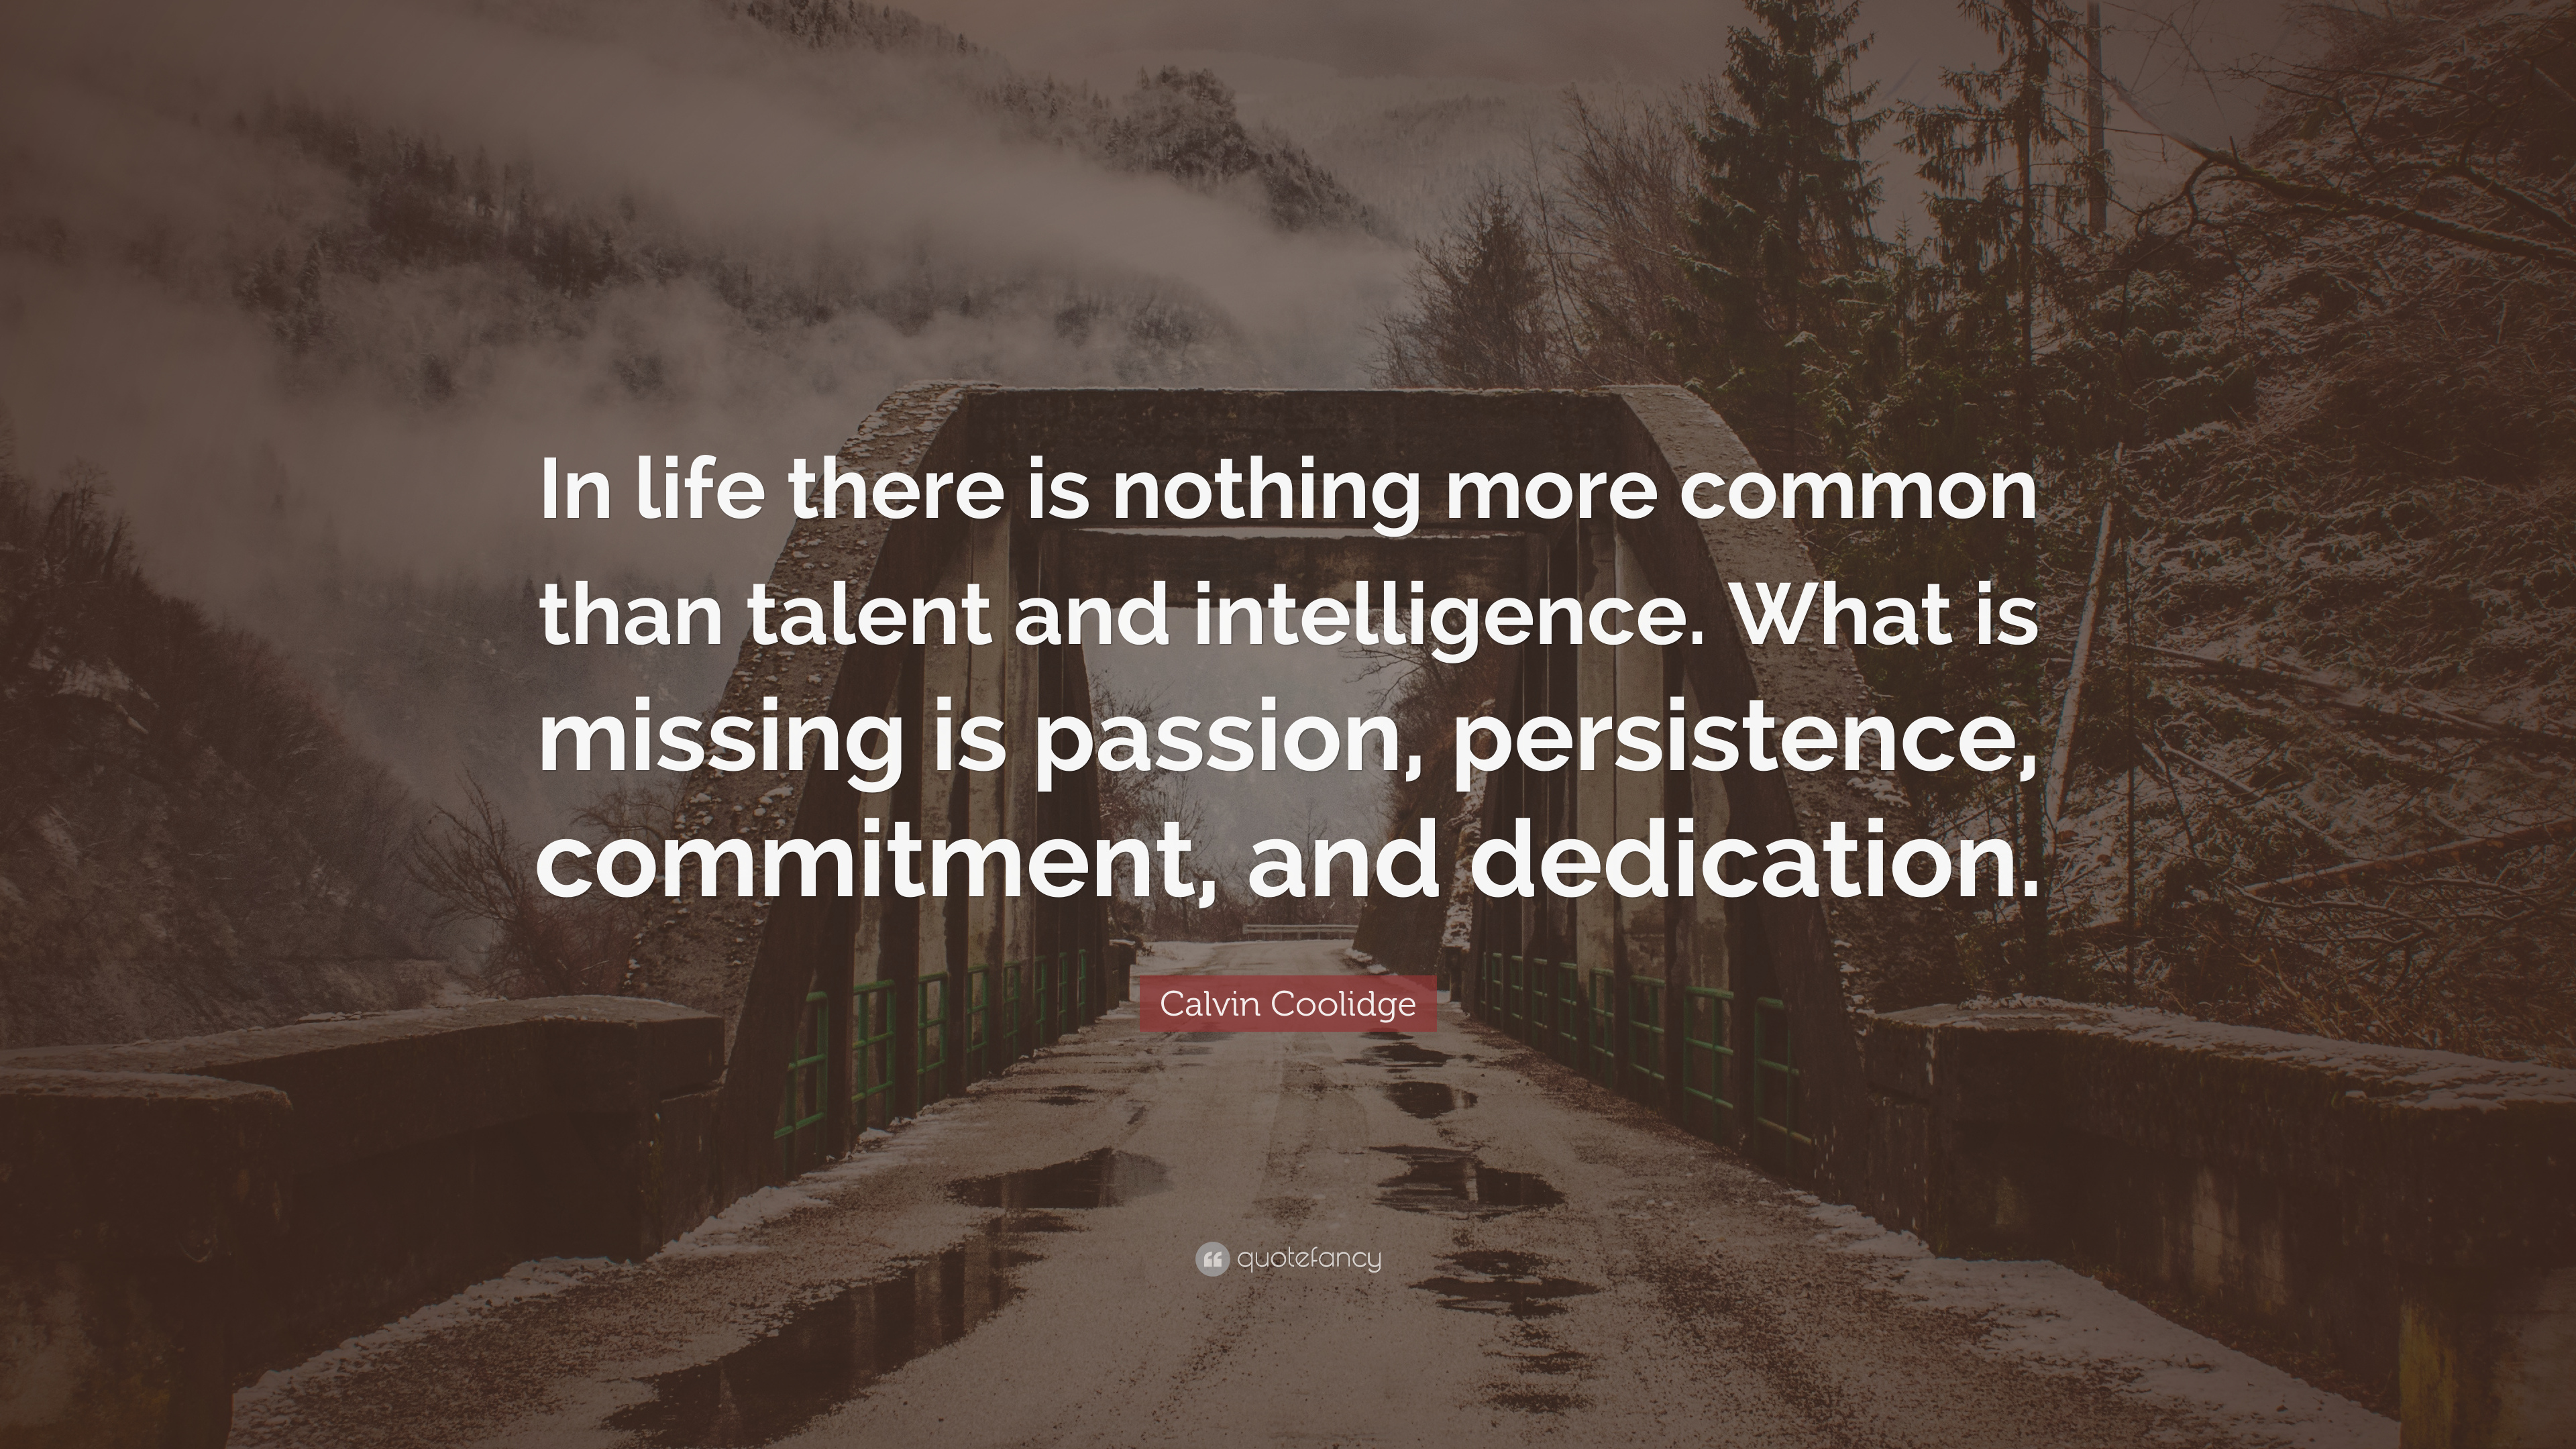 Calvin Coolidge Quotes Persistence | Calvin Coolidge Quote In Life There Is Nothing More Common Than